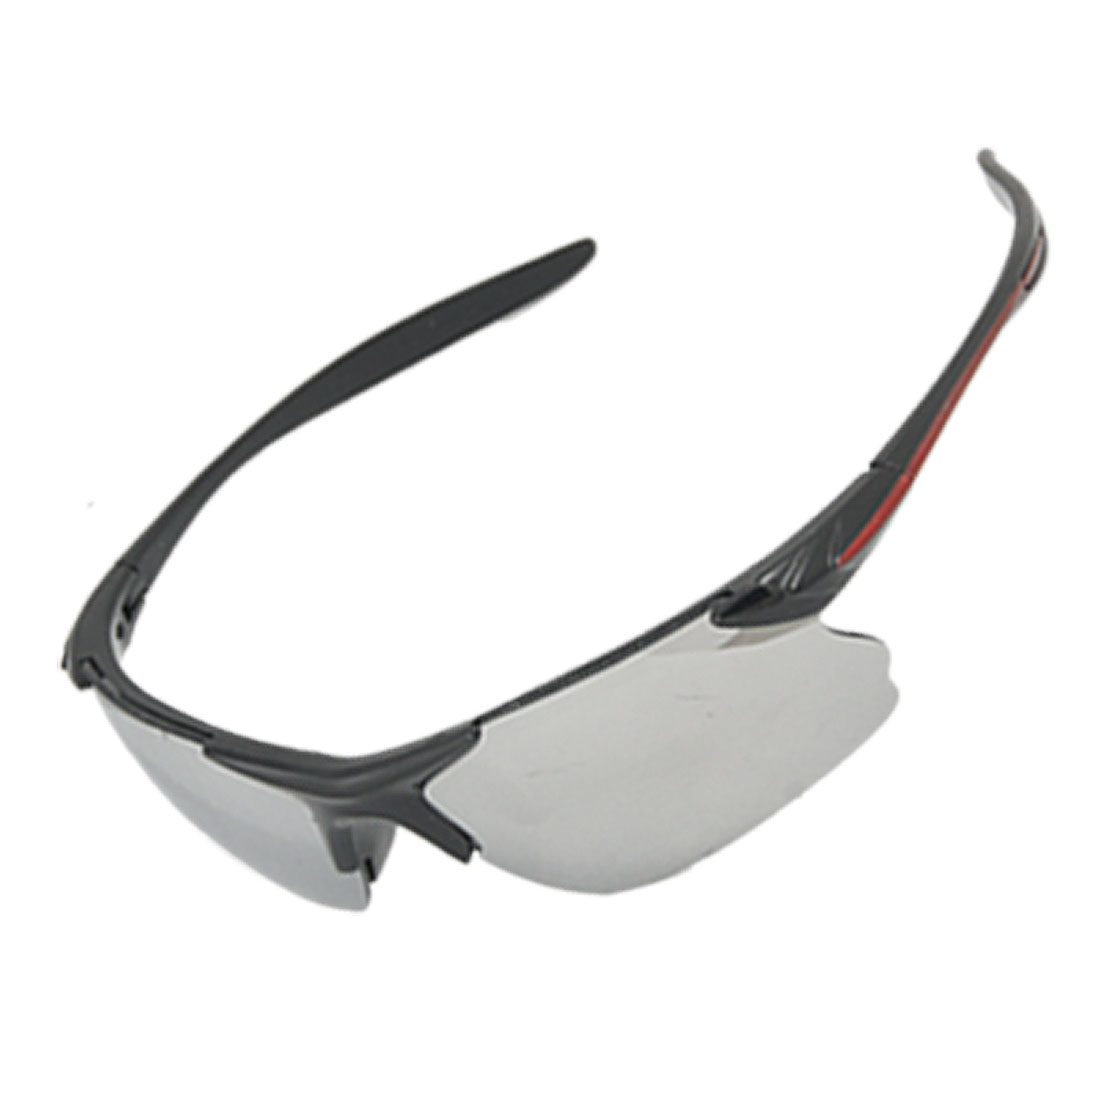 Crimson Line Black Slim Arms Curved Mirror Lens Sports Sunglasses Unisex